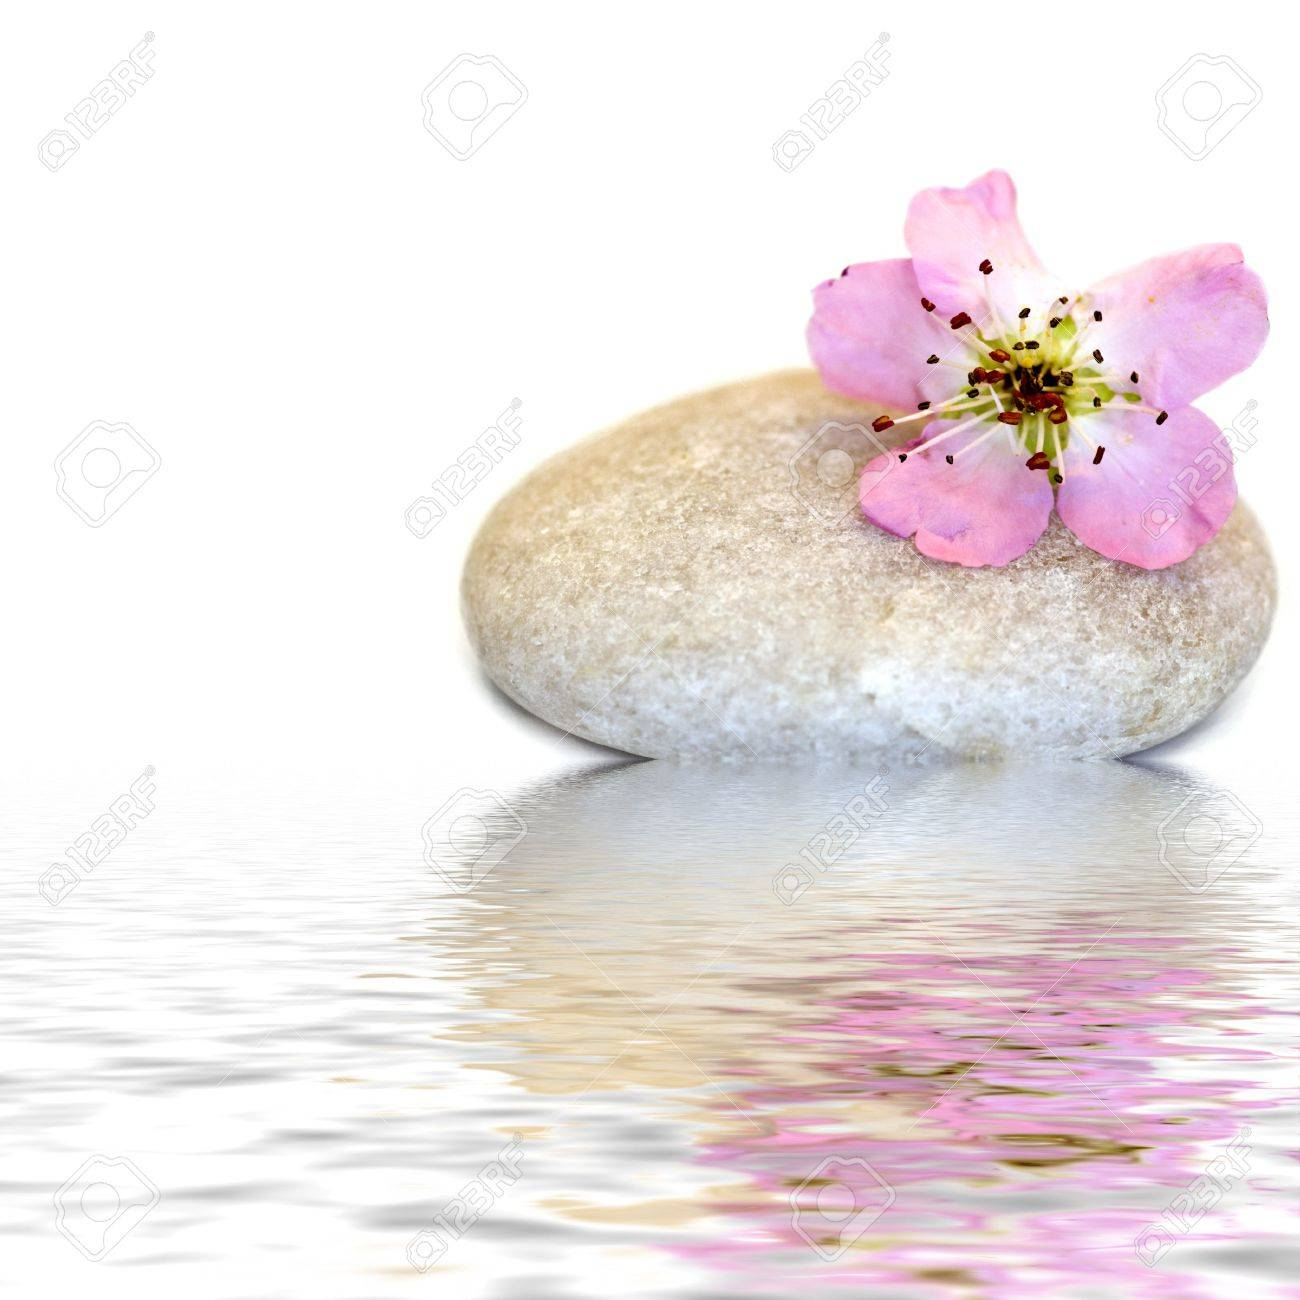 peach blossom on stone in water Stock Photo - 6550589